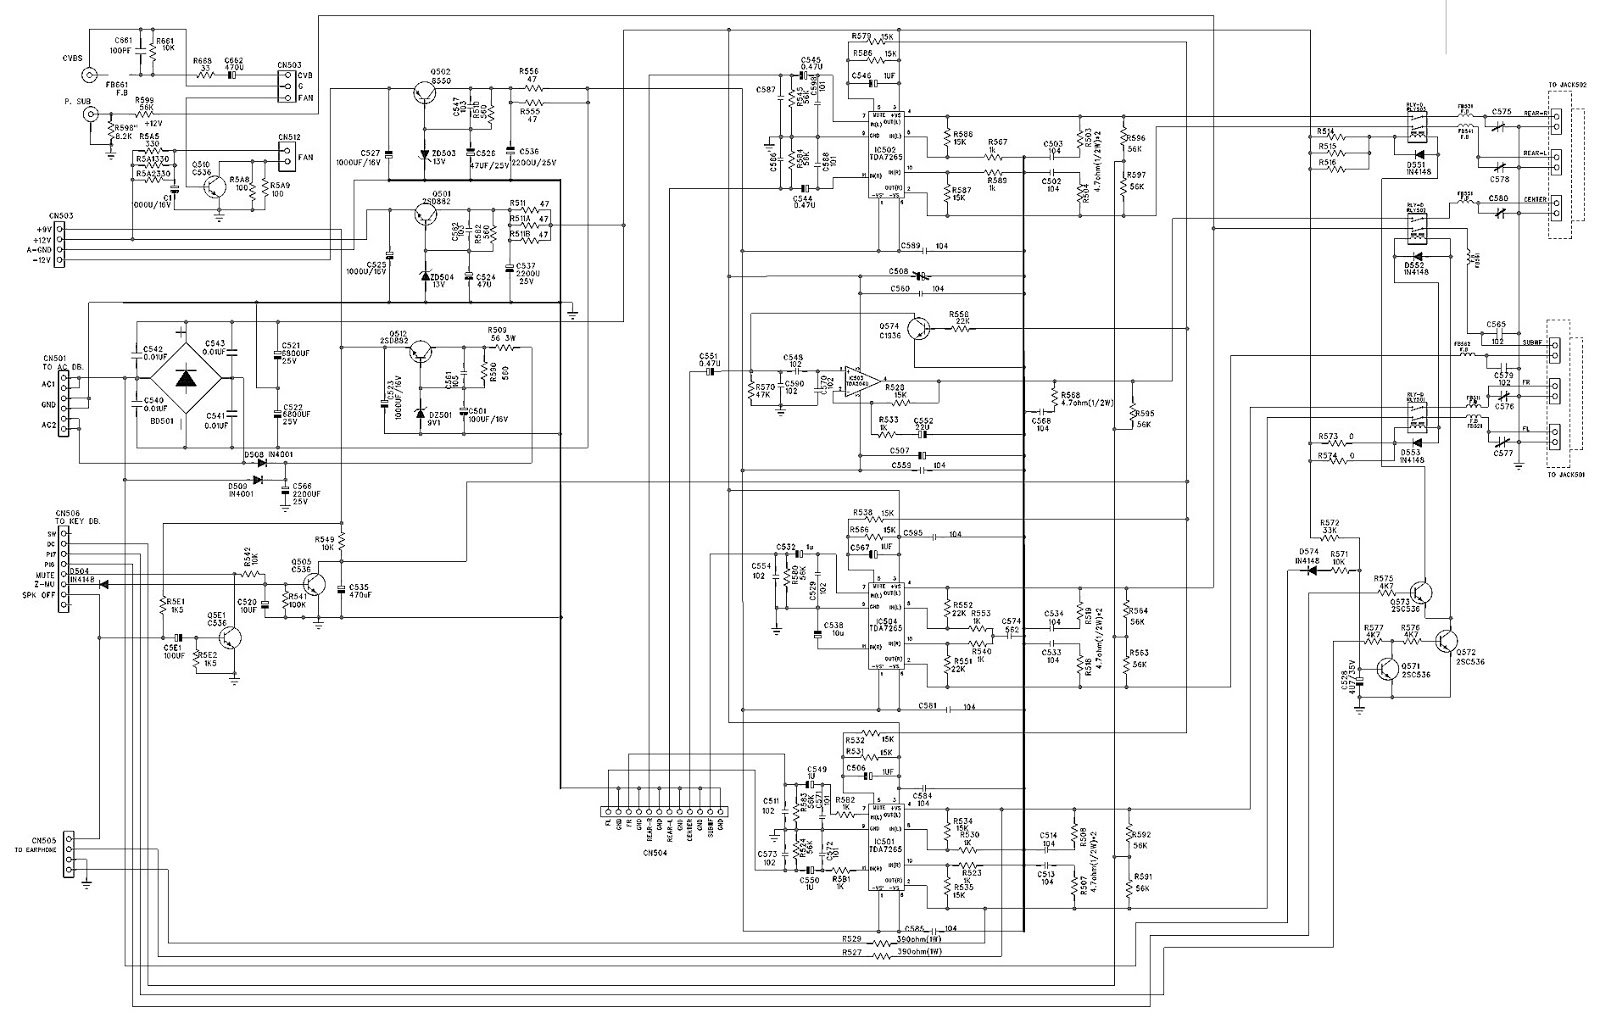 Home Theater System Connection Diagrams Bose Systems For Wiring Akira Schematic Diagram Electro Help Blogspot Com Speaker